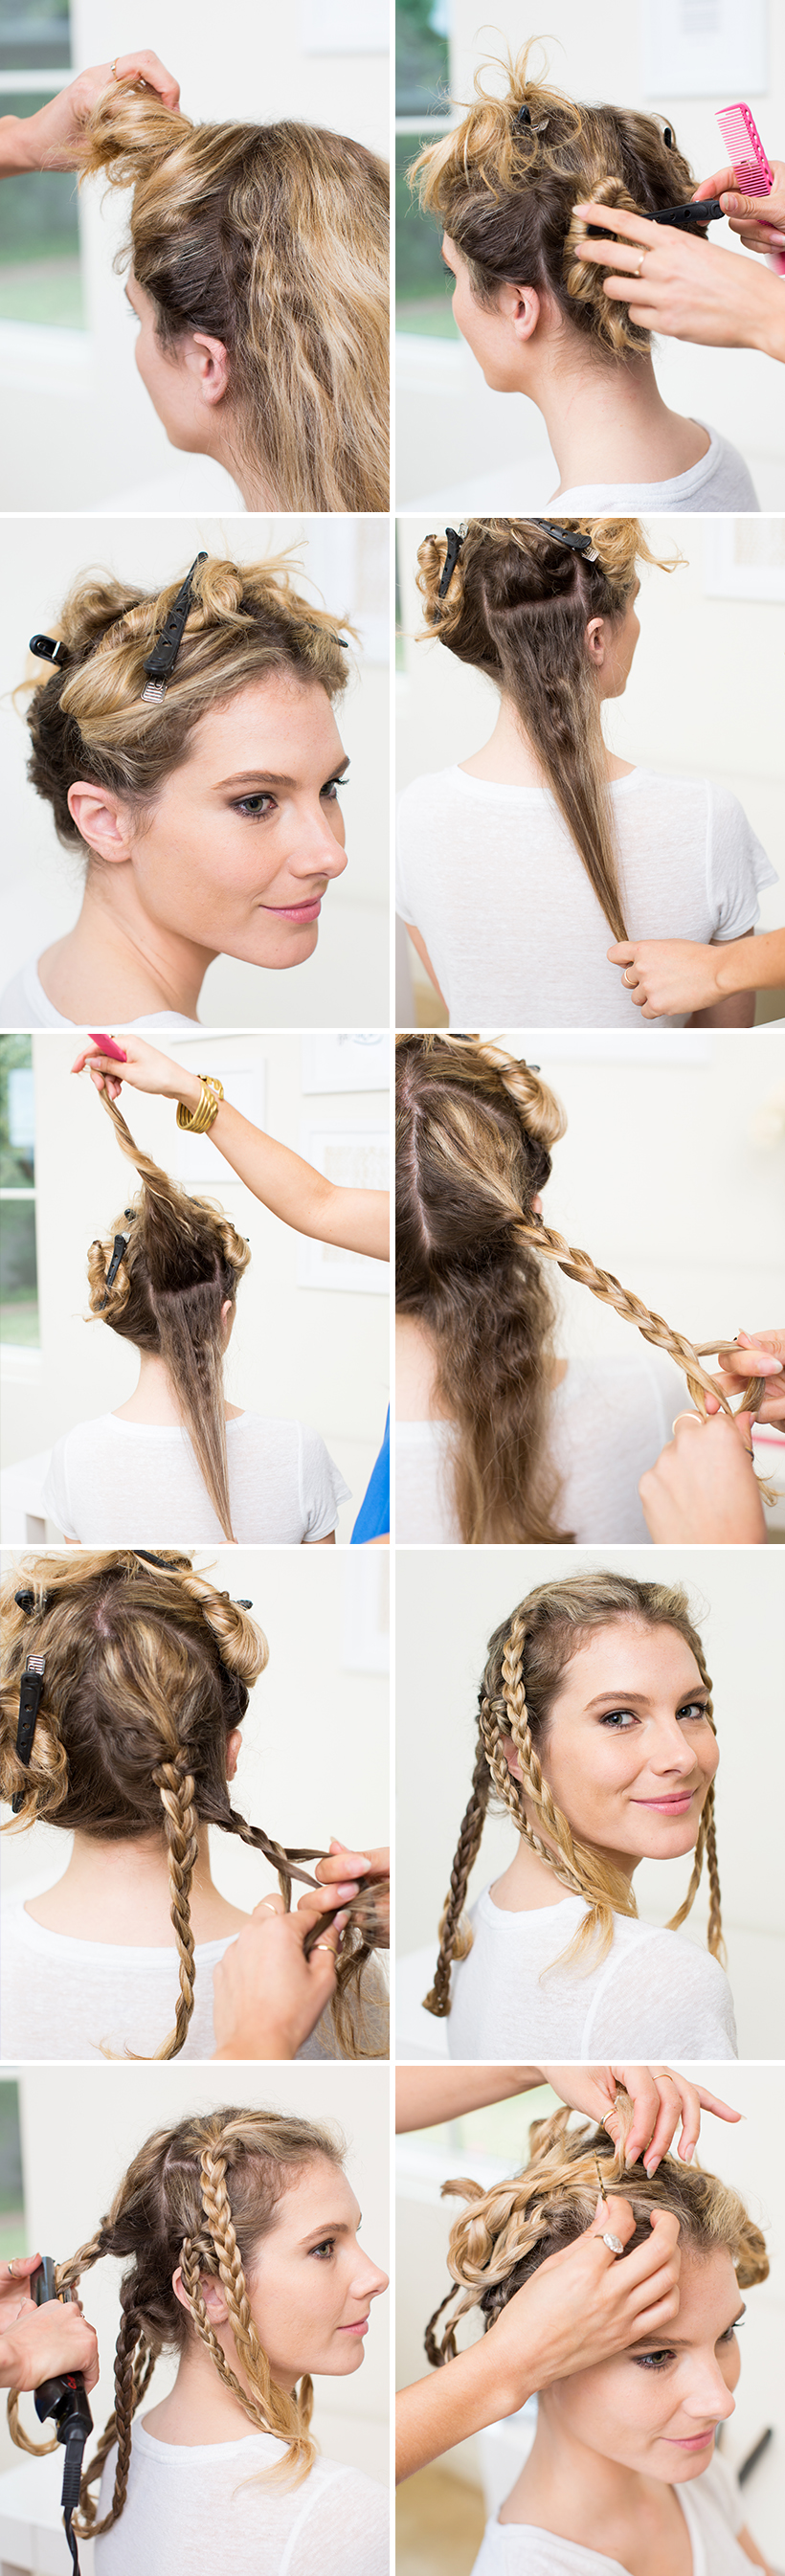 How To Create Perfect Waves In Your Sleep Camille Styles